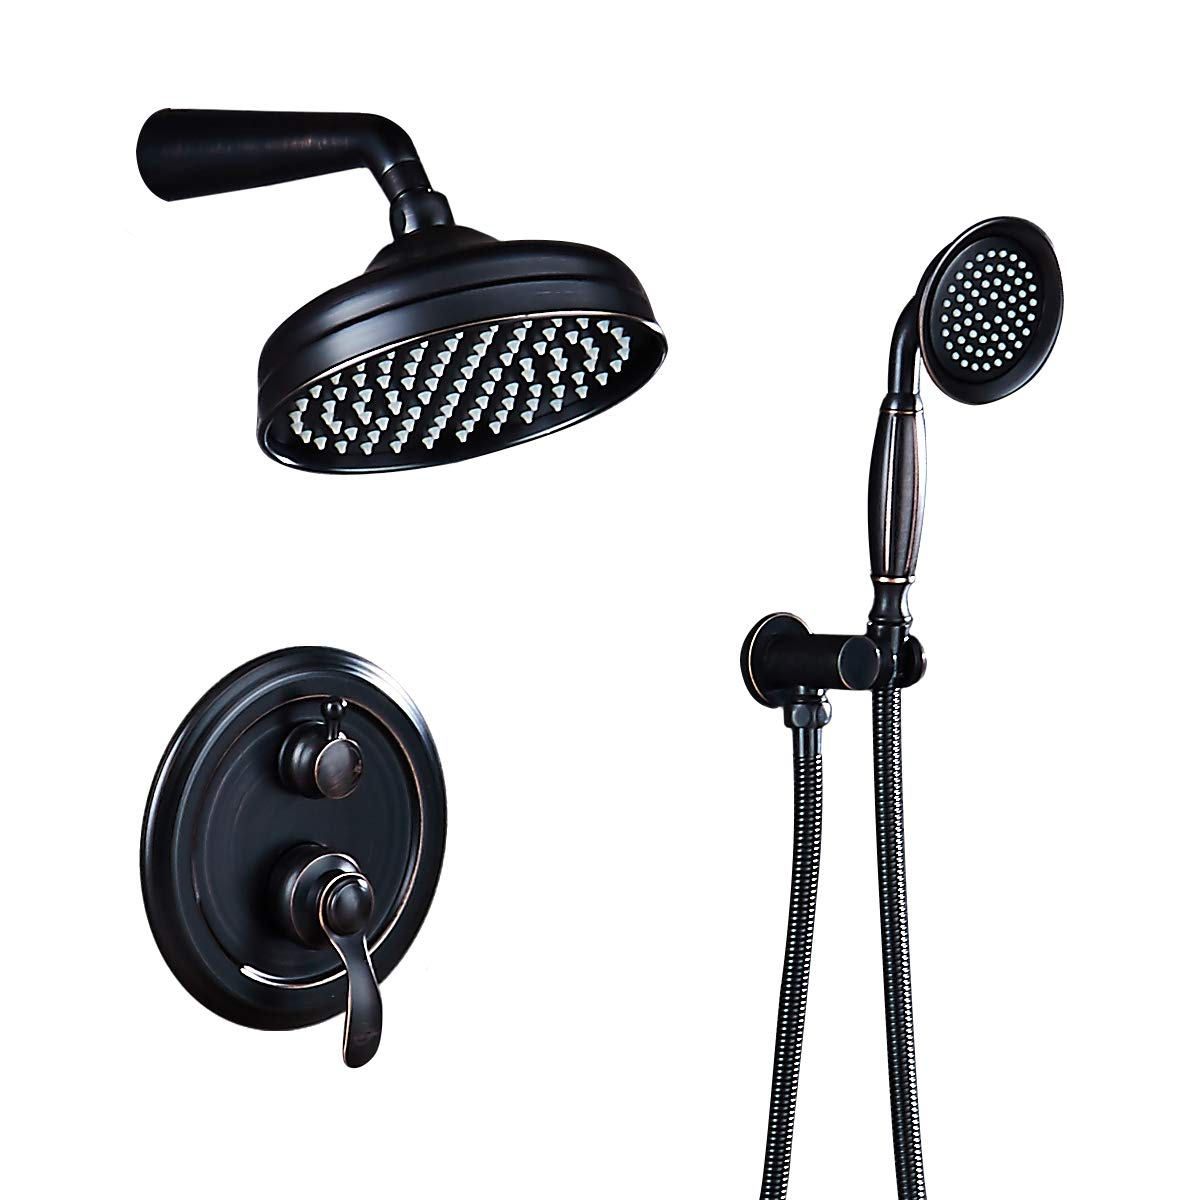 AUKTOPT Rainfall Shower Head System with Handshower Bathroom Luxury Rain Mixer Combo Set Oil Rubbed Bronze B Contain Faucet Rough-in Valve